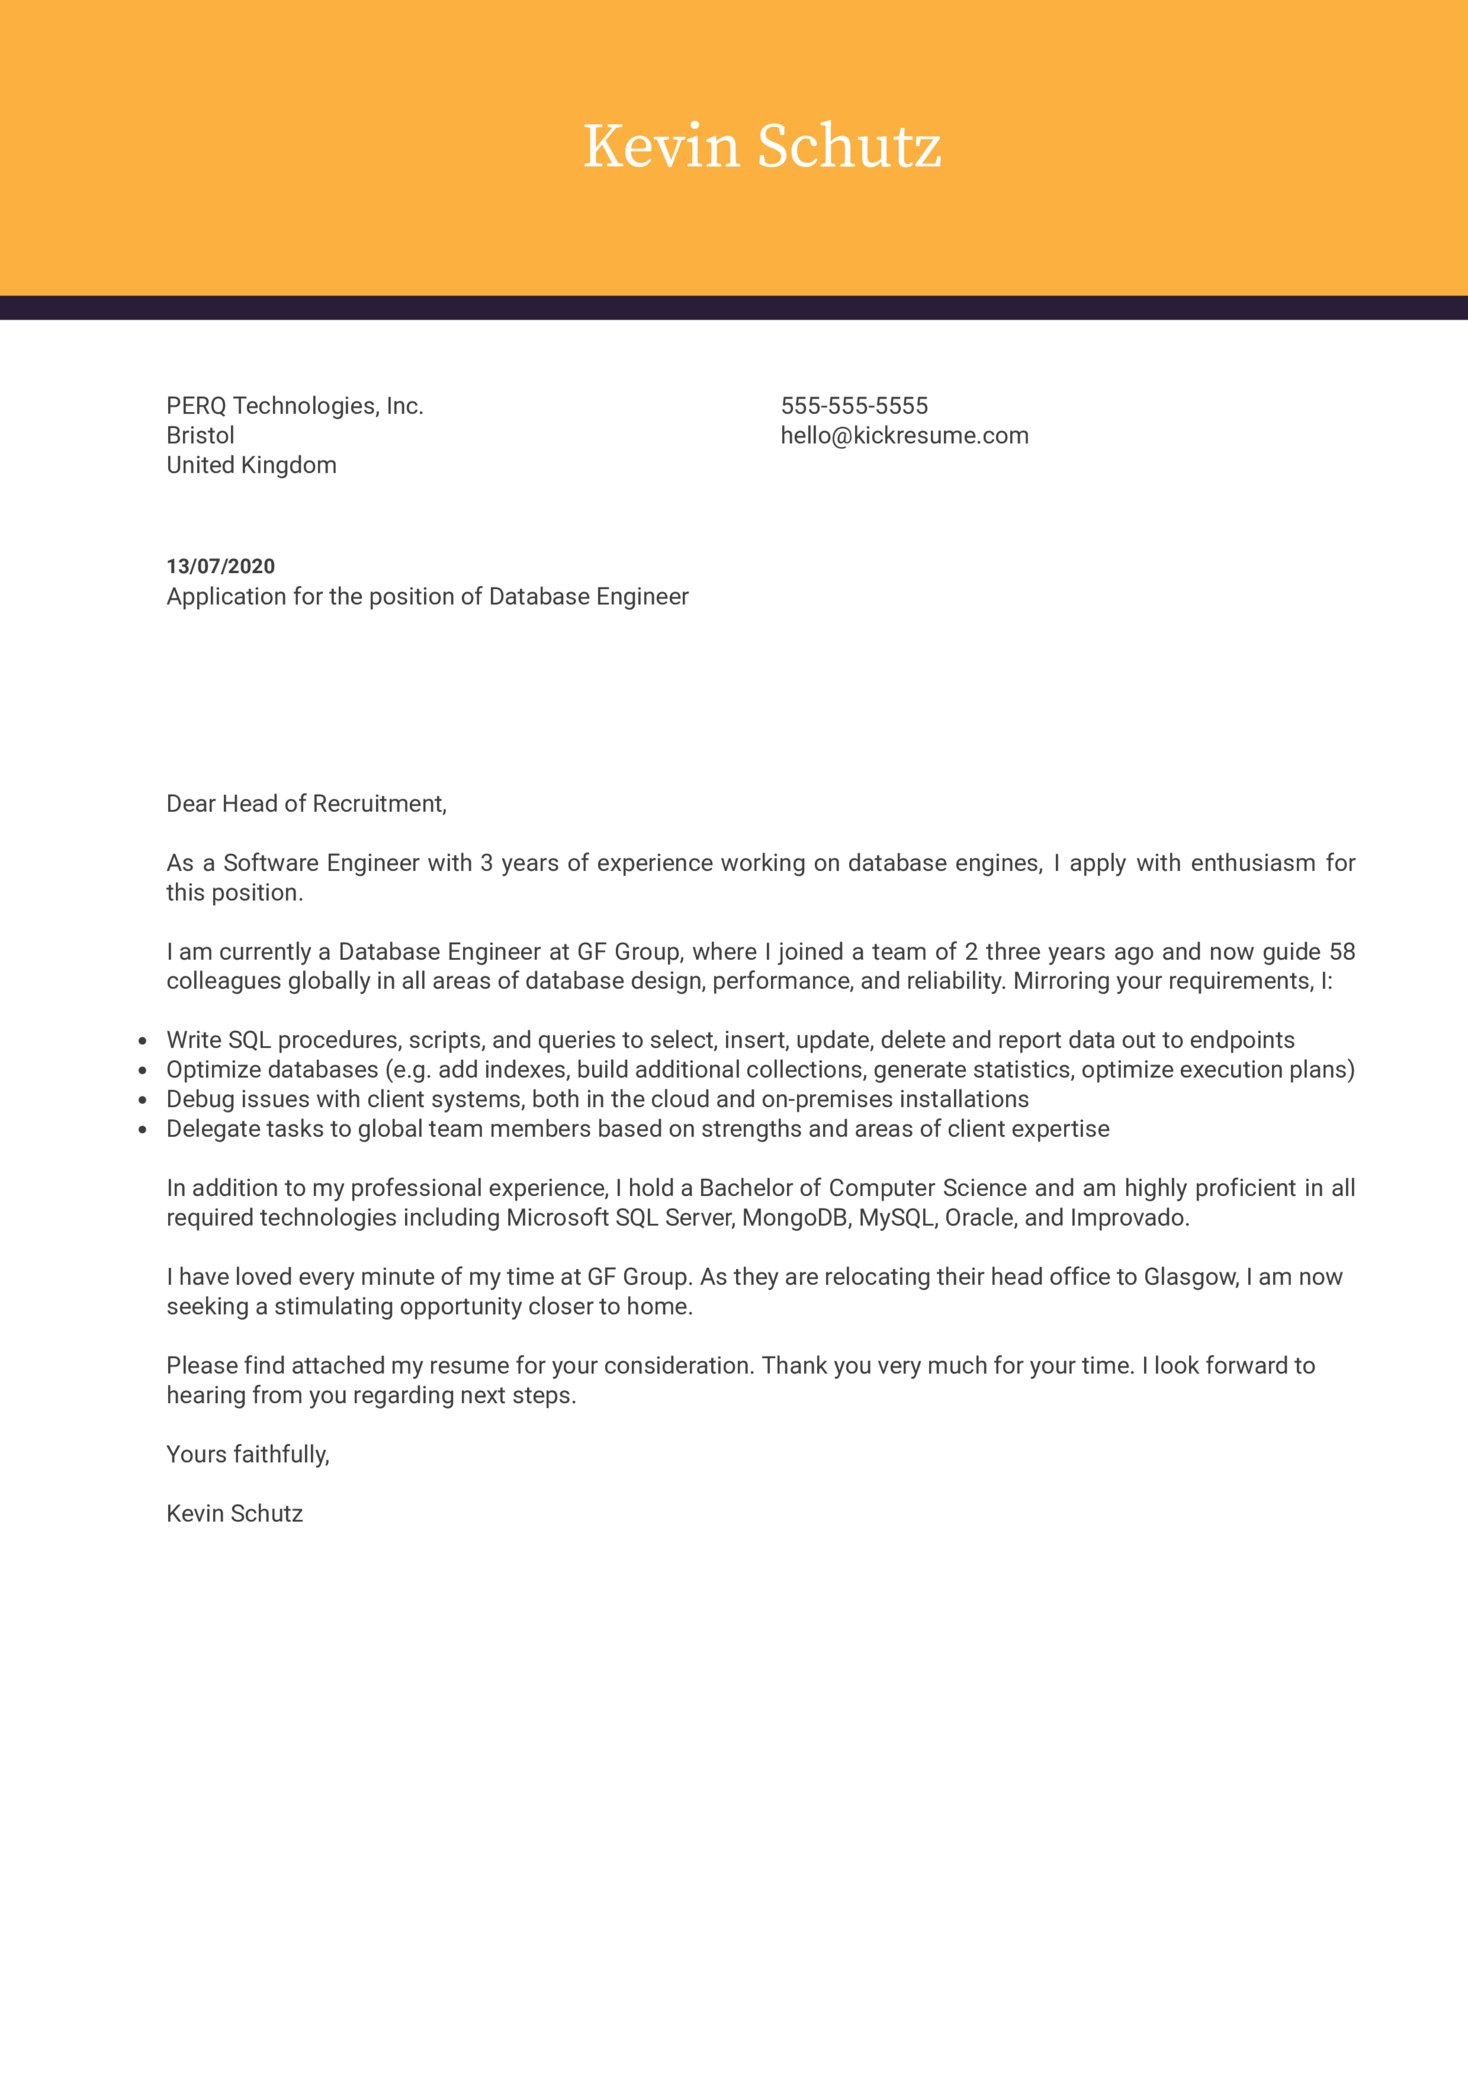 Database Engineer Cover Letter Example